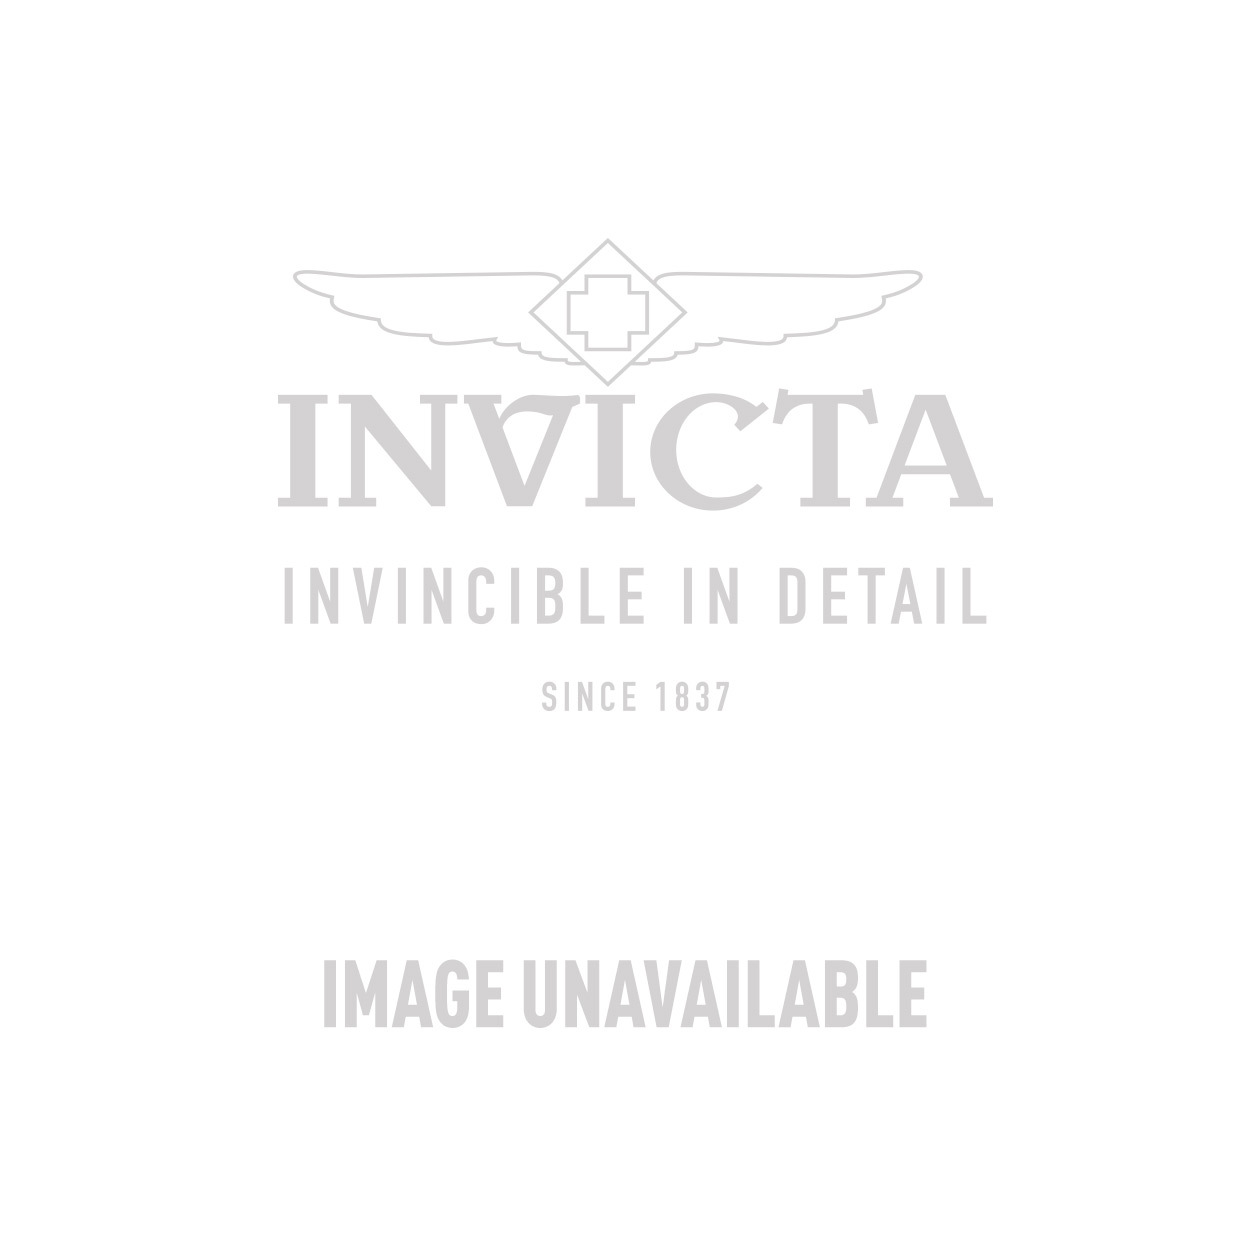 Invicta S. Coifman Swiss Movement Quartz Watch - Gold case with Brown tone Leather band - Model SC0331